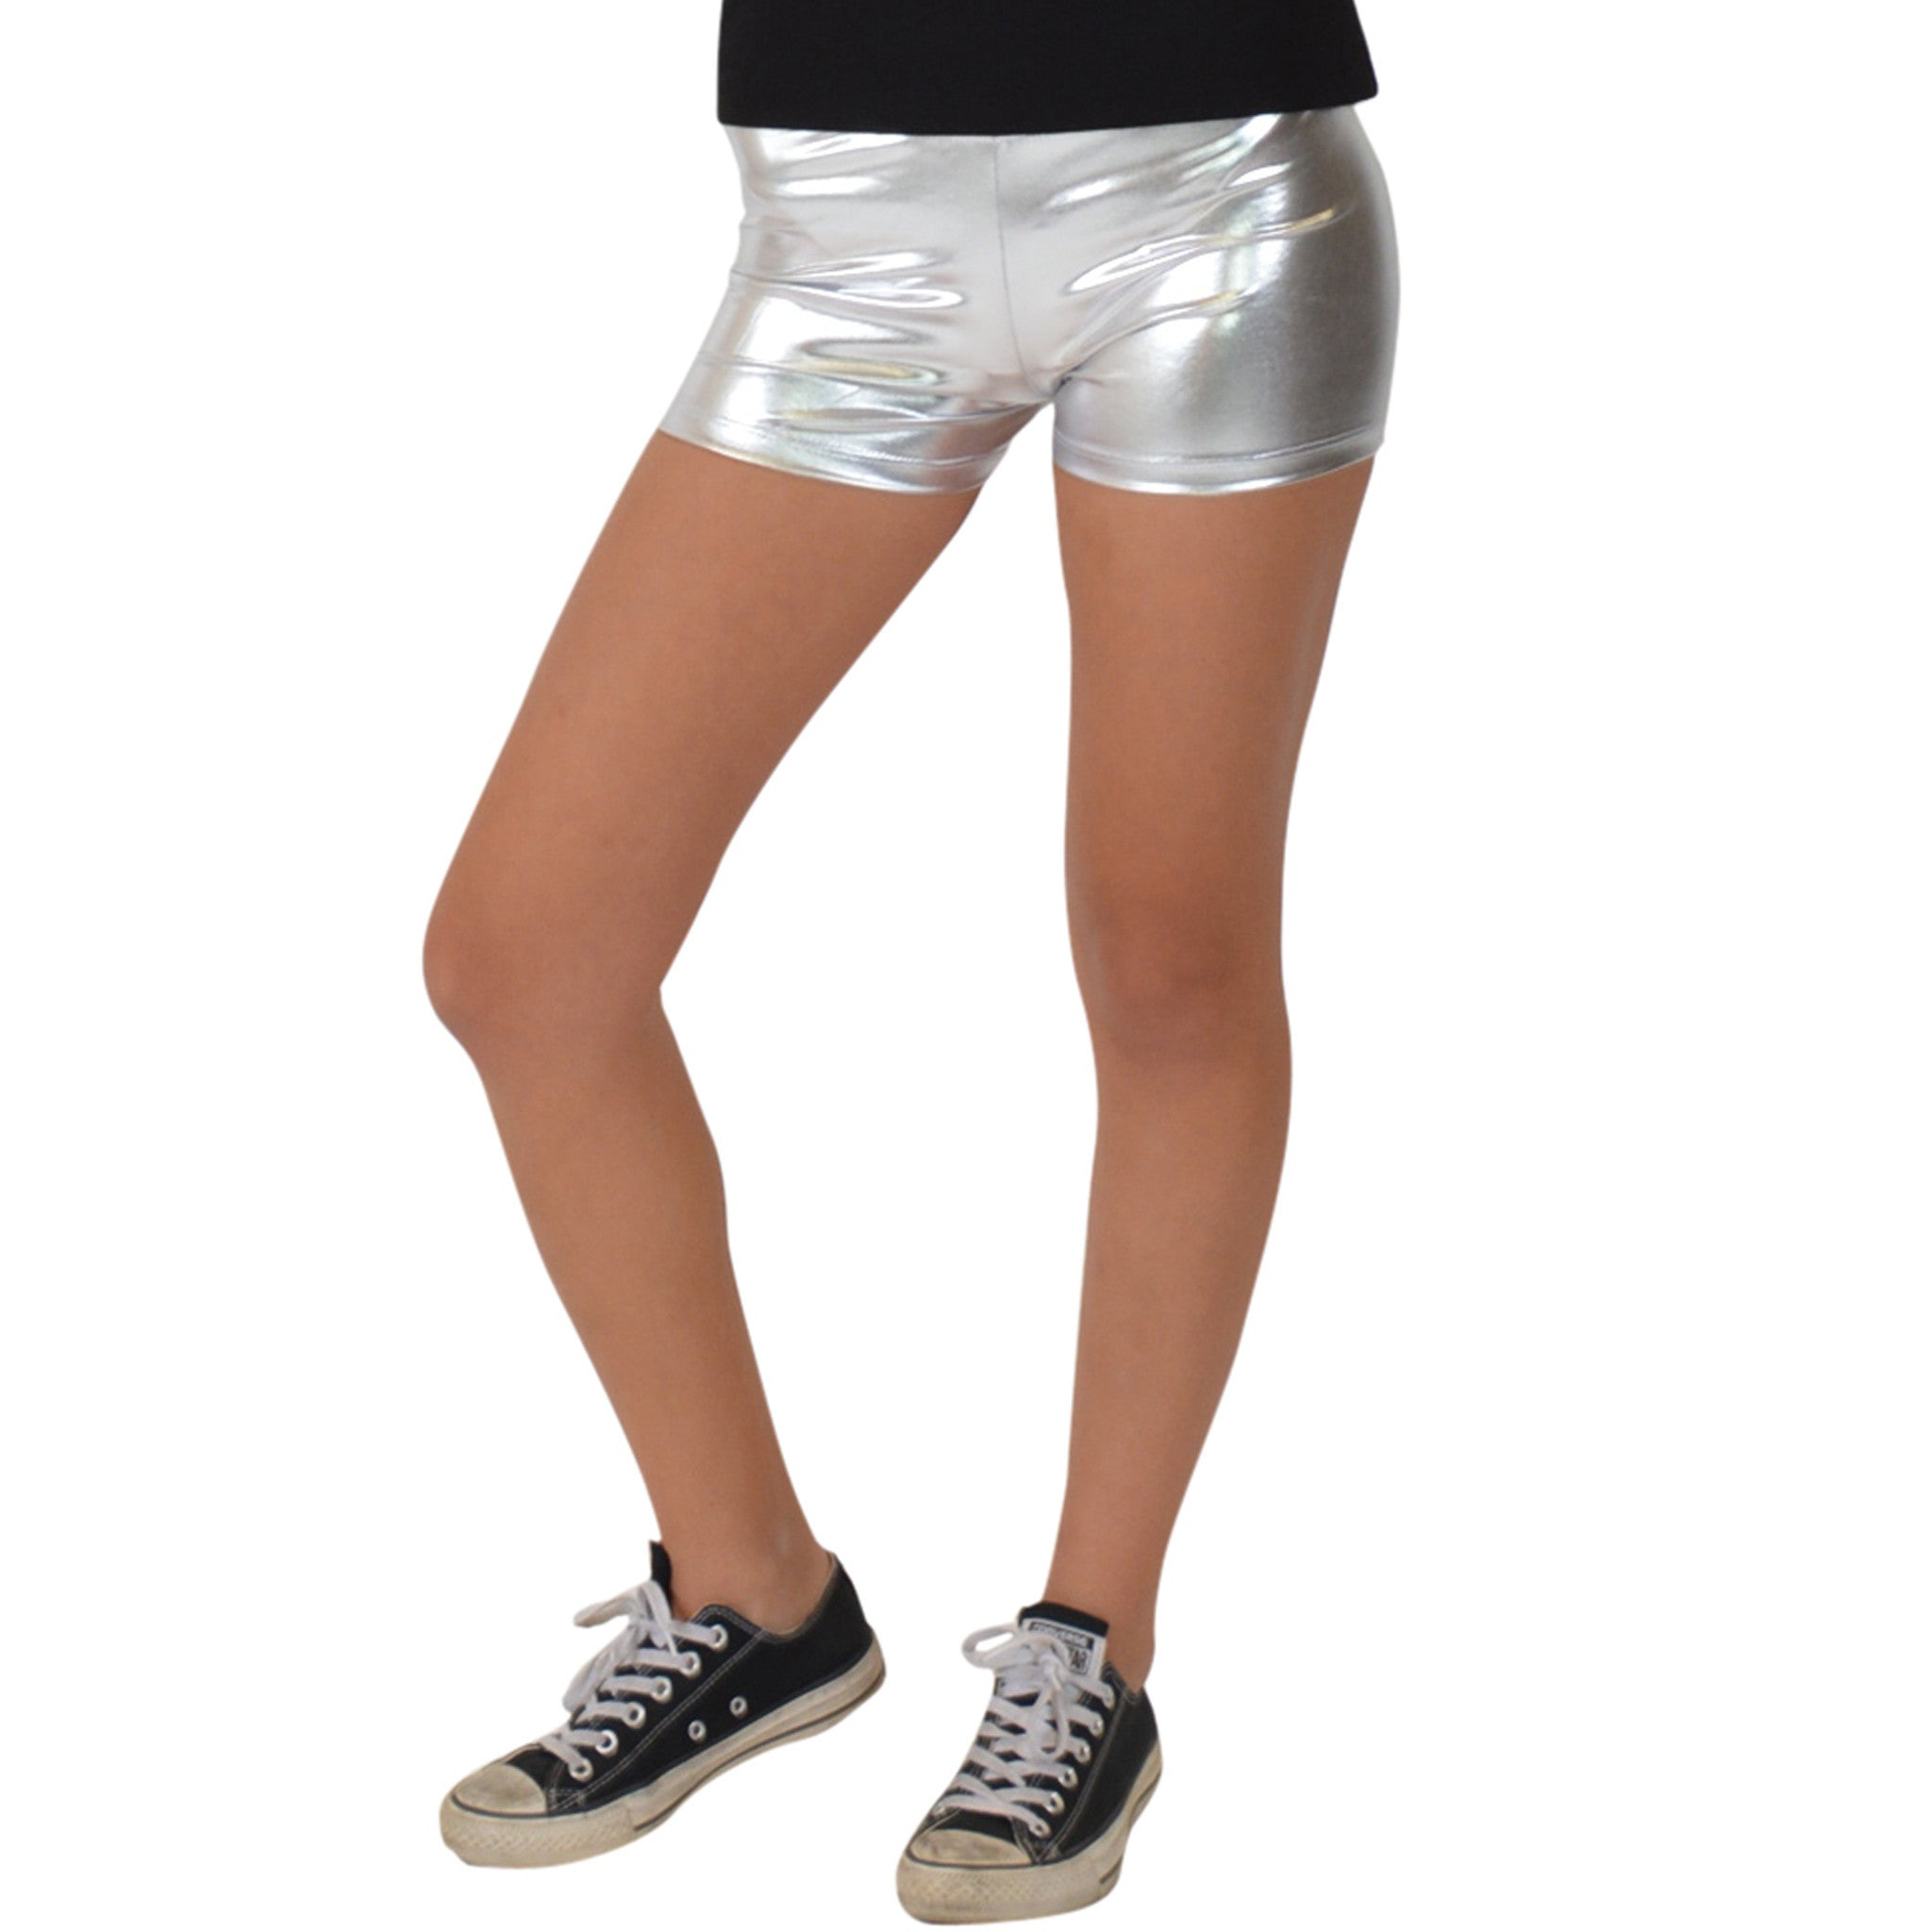 Teamwear Foil Metallic Booty Shorts